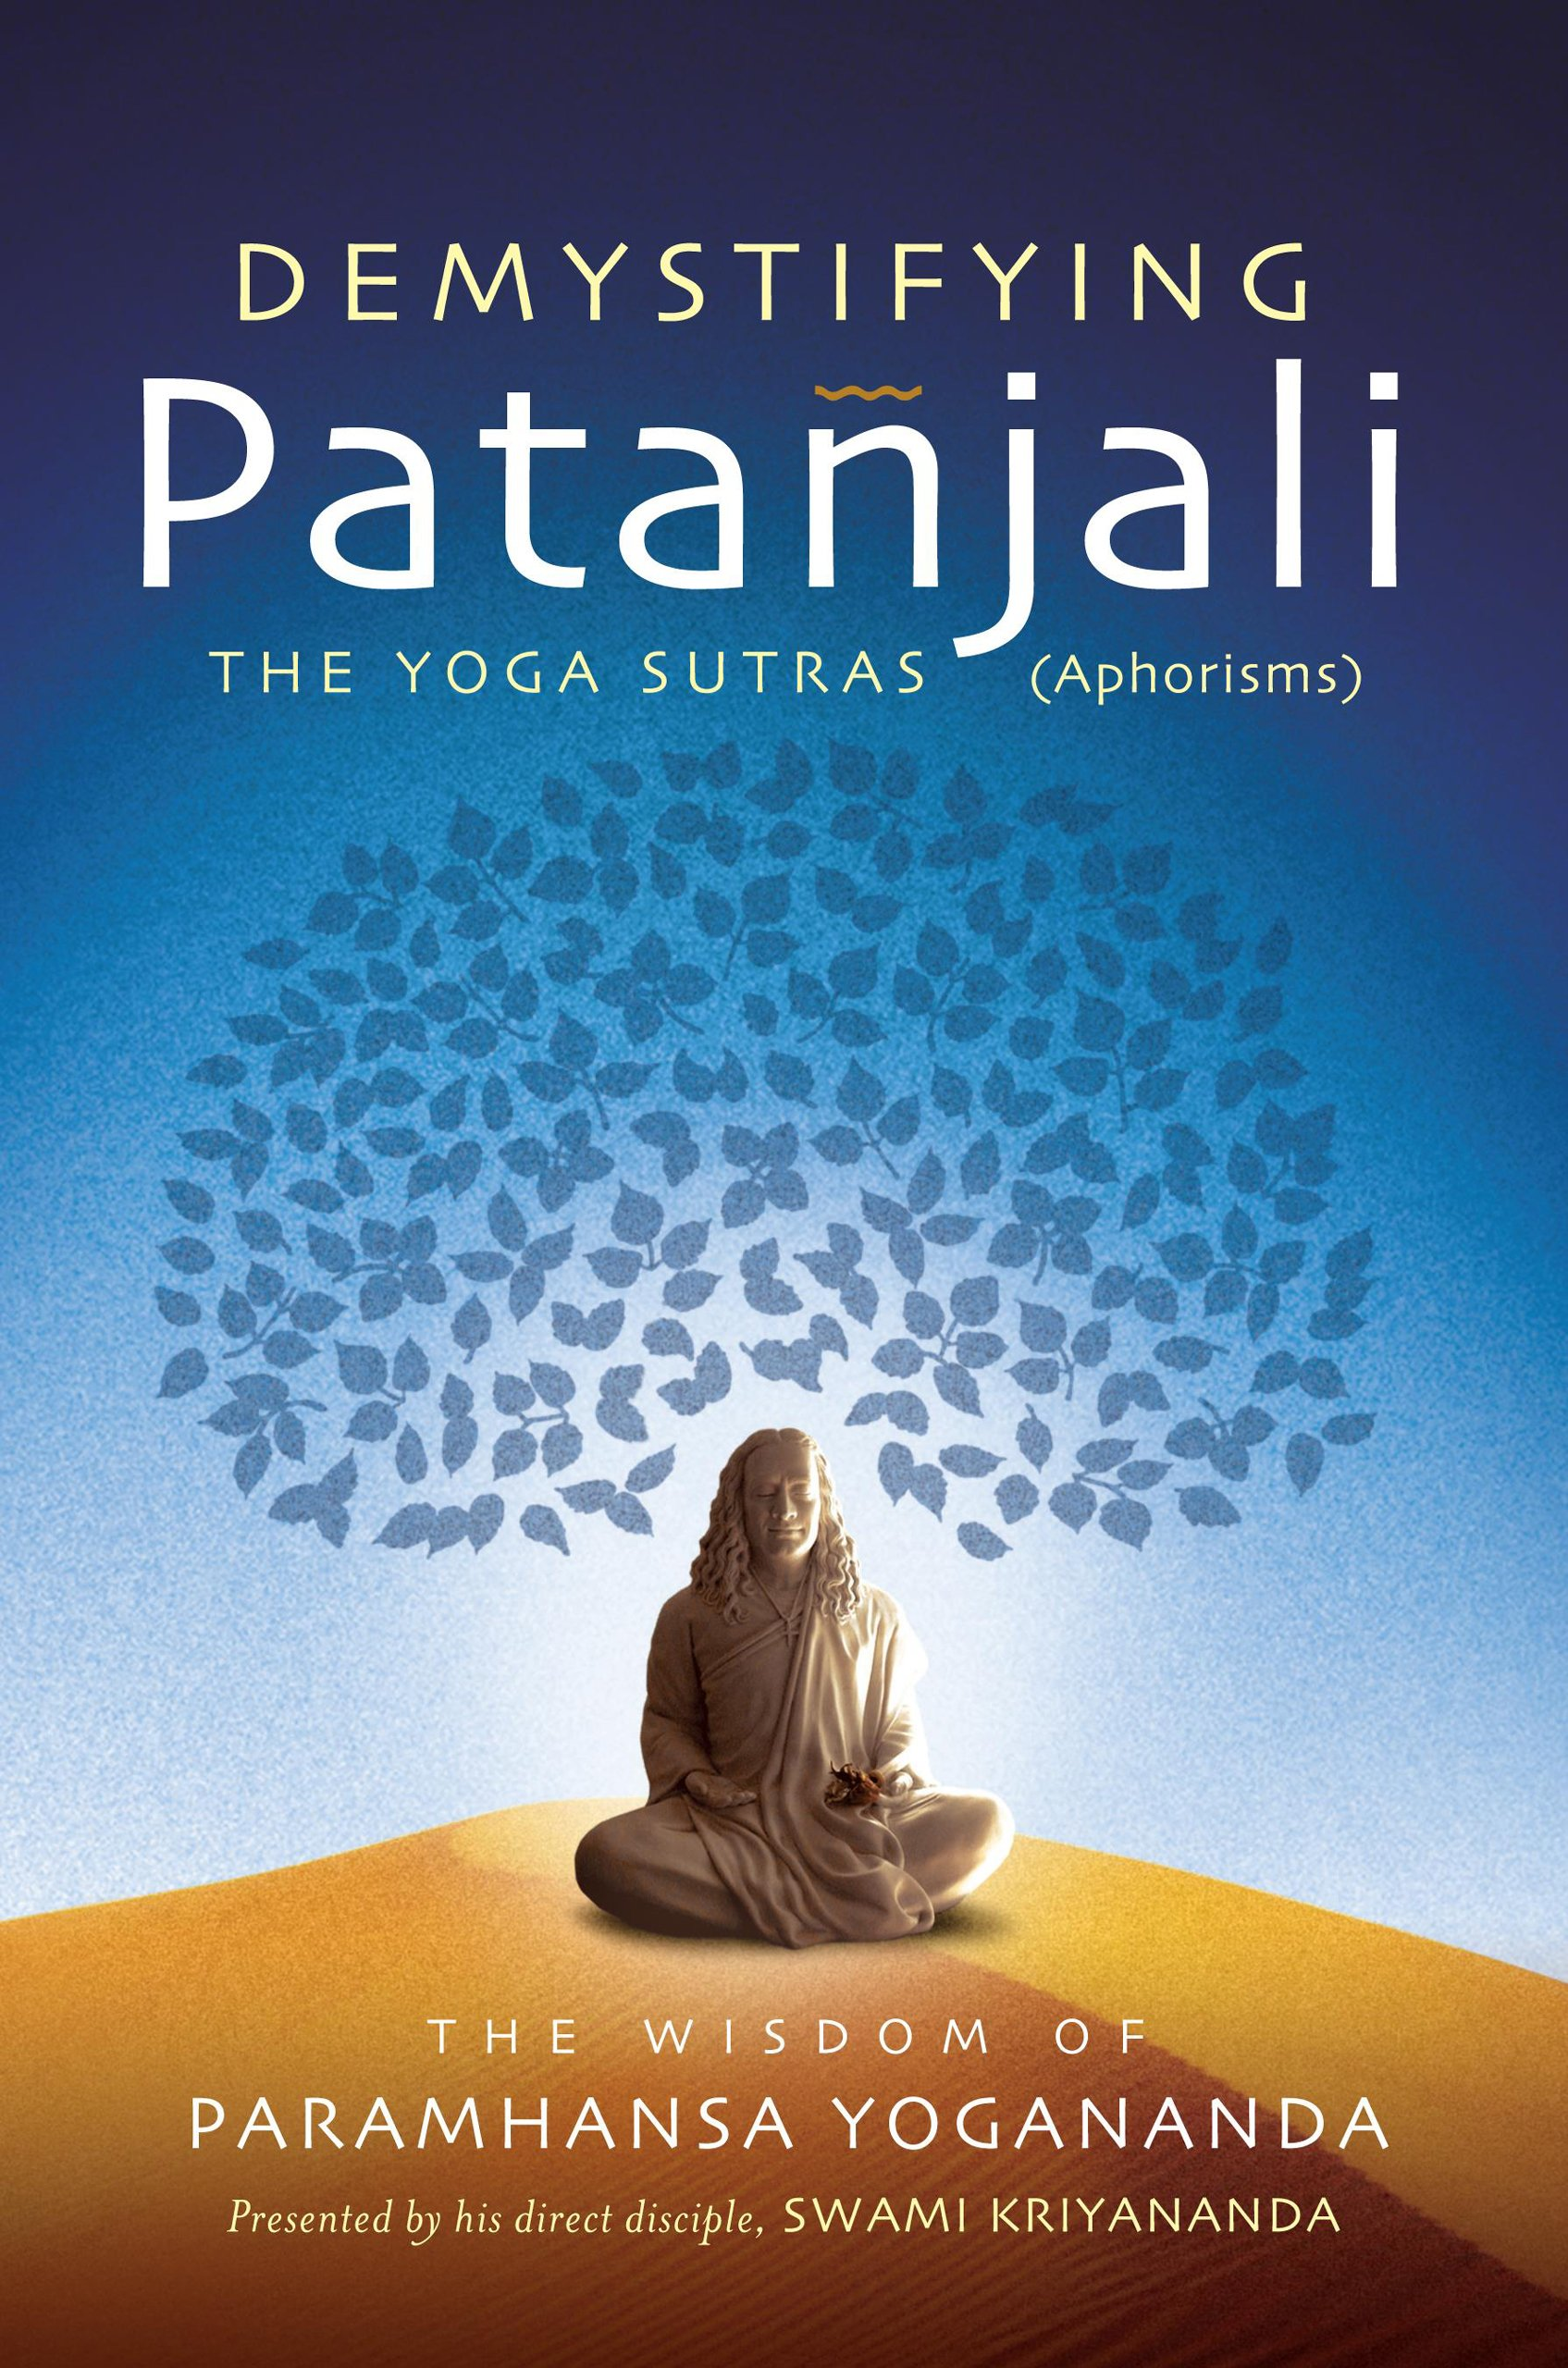 Demystifying Patanjali: The Yoga Sutras: The Wisdom of Paramhansa Yogananda  as Presented by his Direct Disciple, Swami Kriyananda: Paramhansa  Yogananda: ...